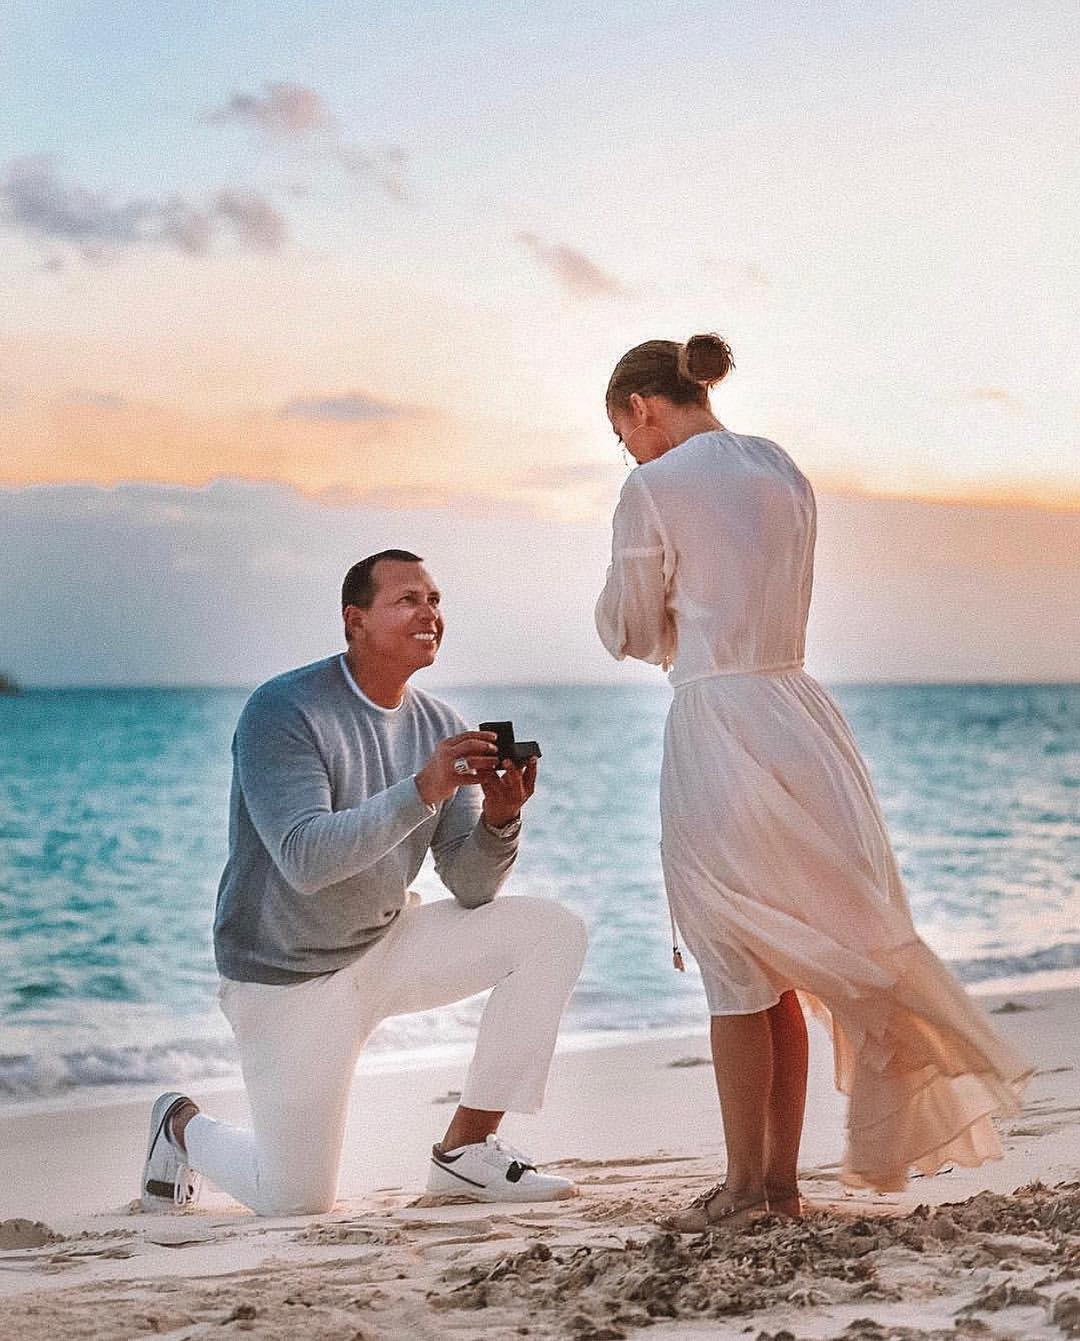 JLO says Yes - engaged to arod